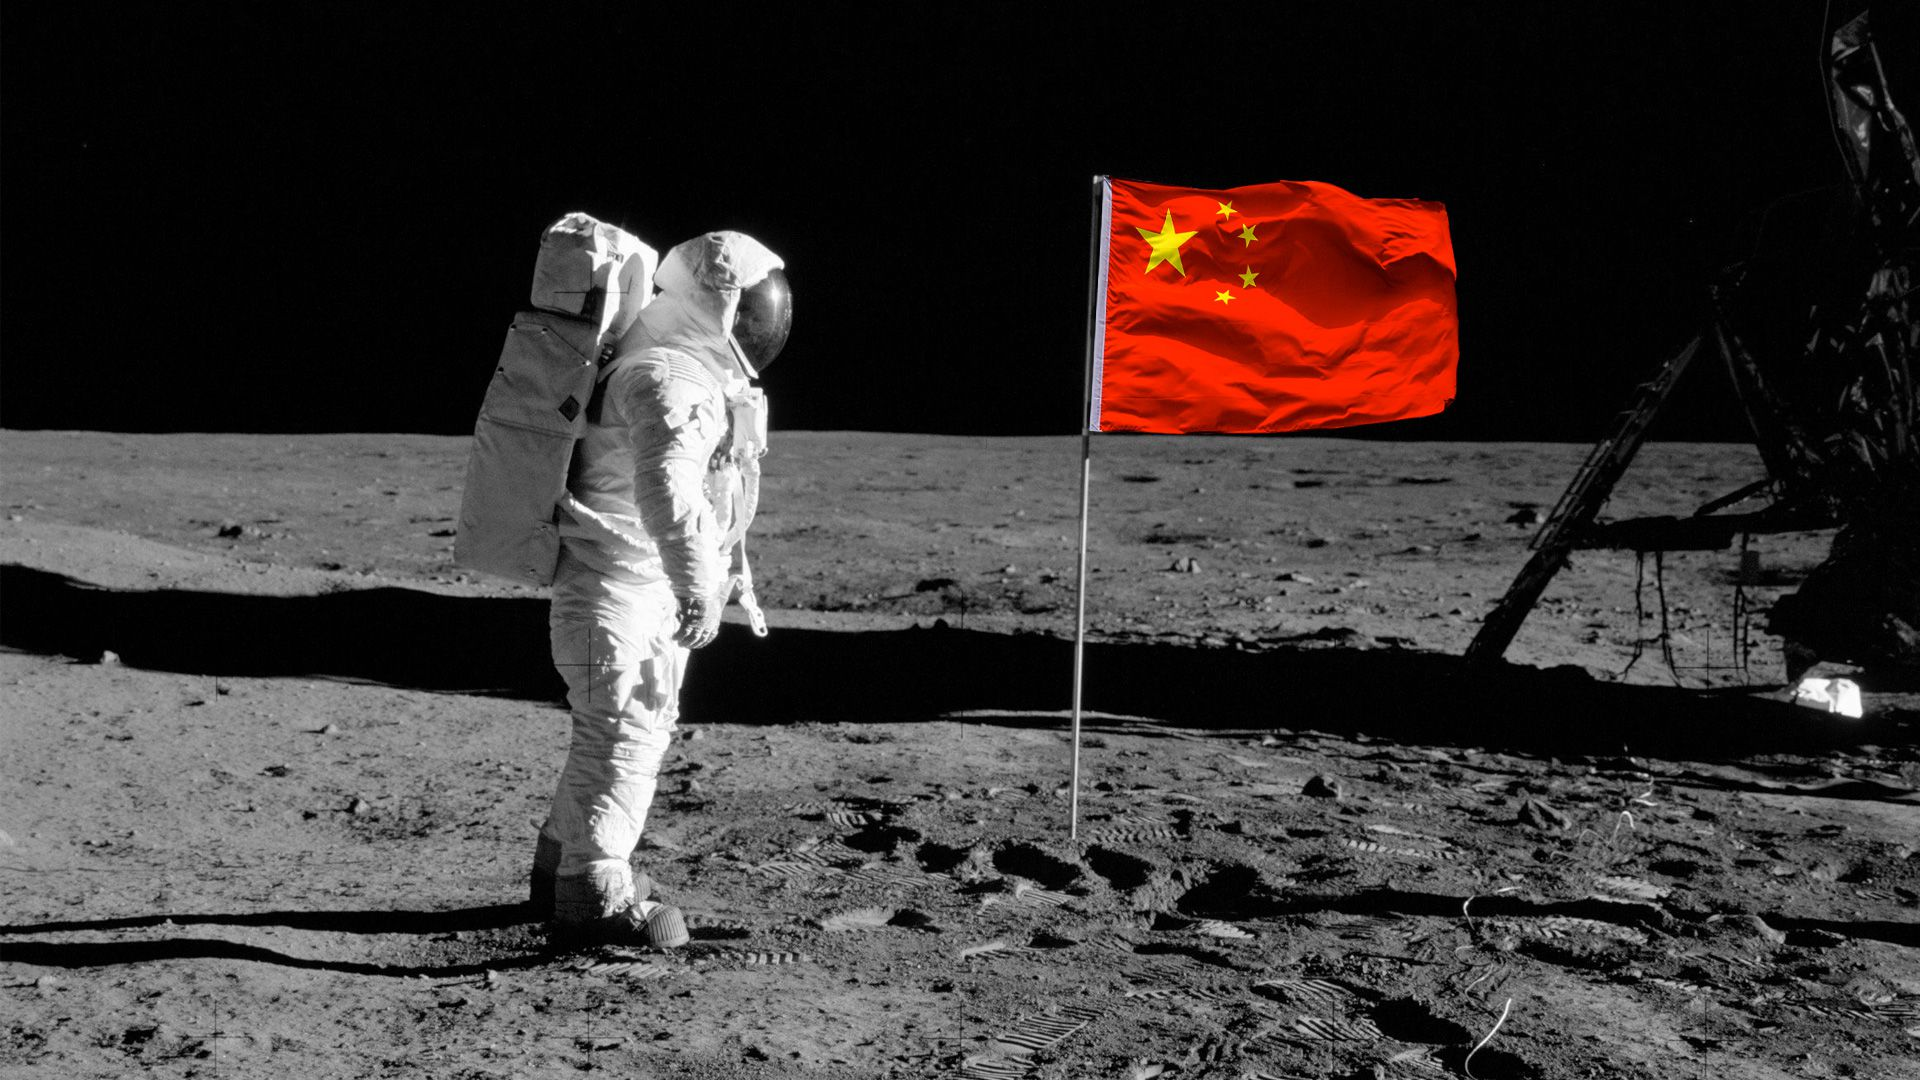 A Chinese astronaut planting a flag on the Moon.